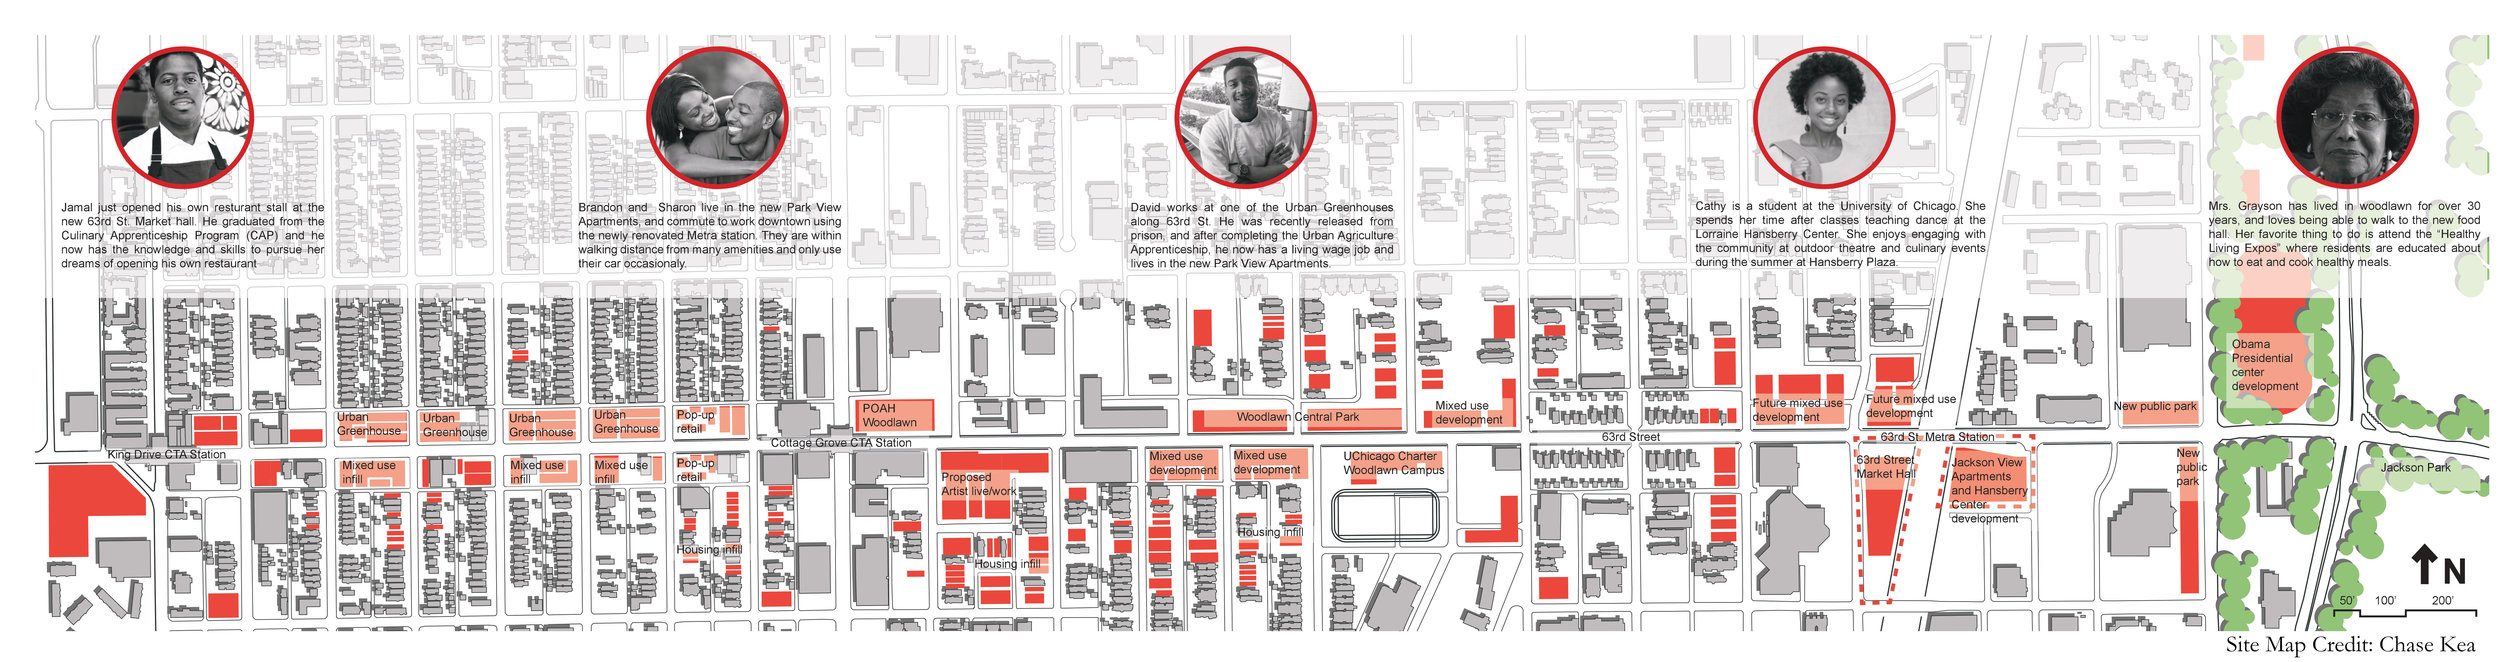 Extended site map, including client and context analysis.